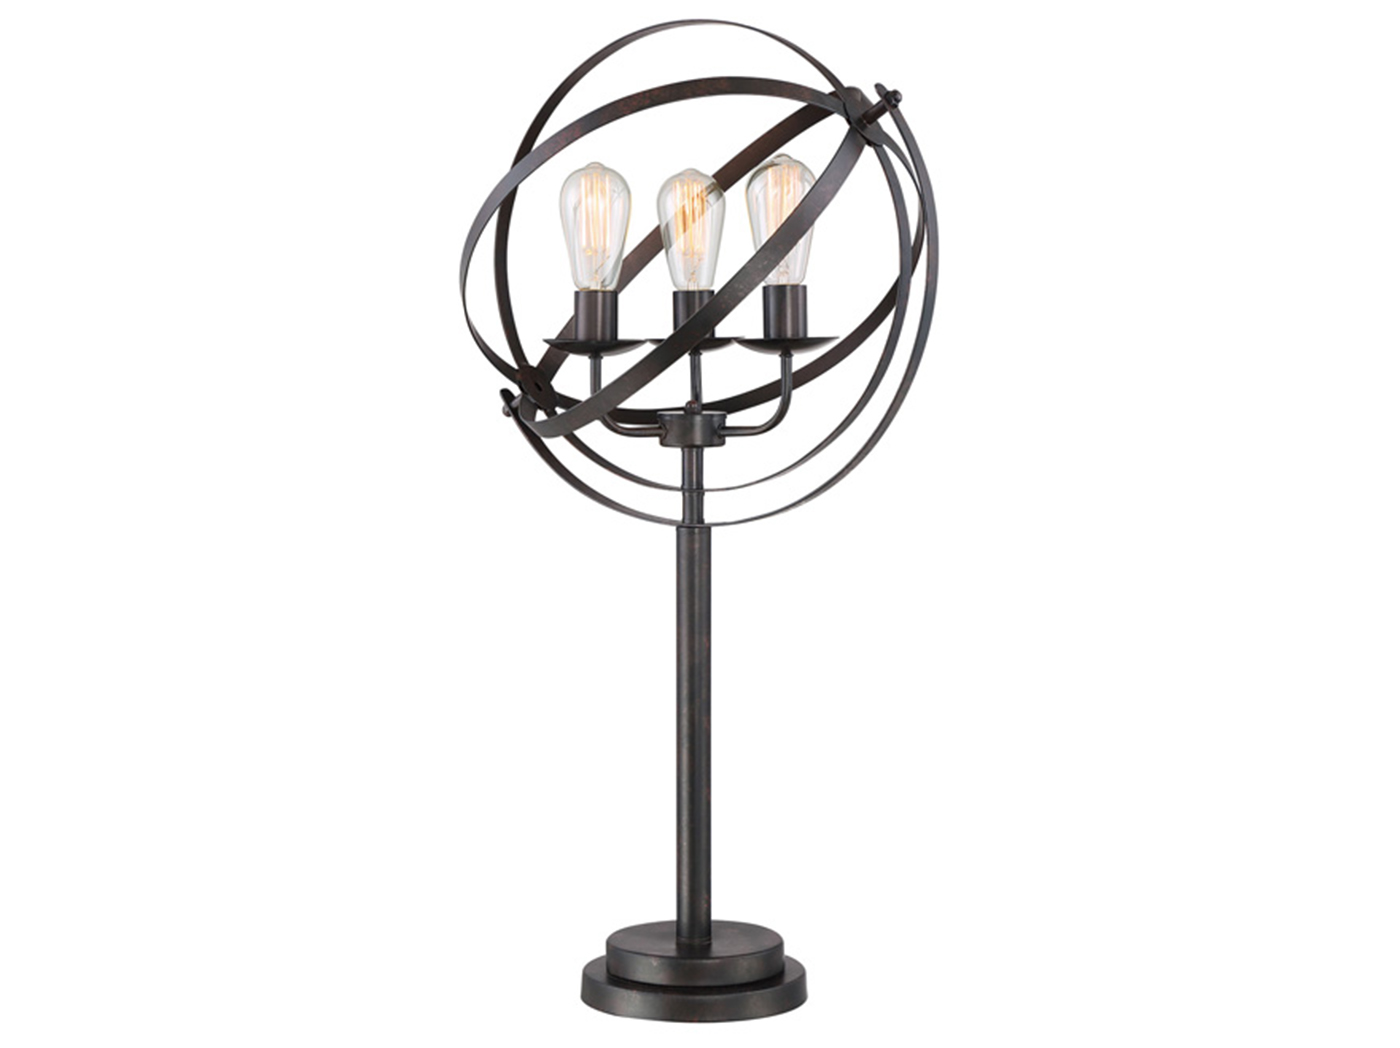 Black Metal Orb Shade Table Lamp 34 H With Vintage Bulbs